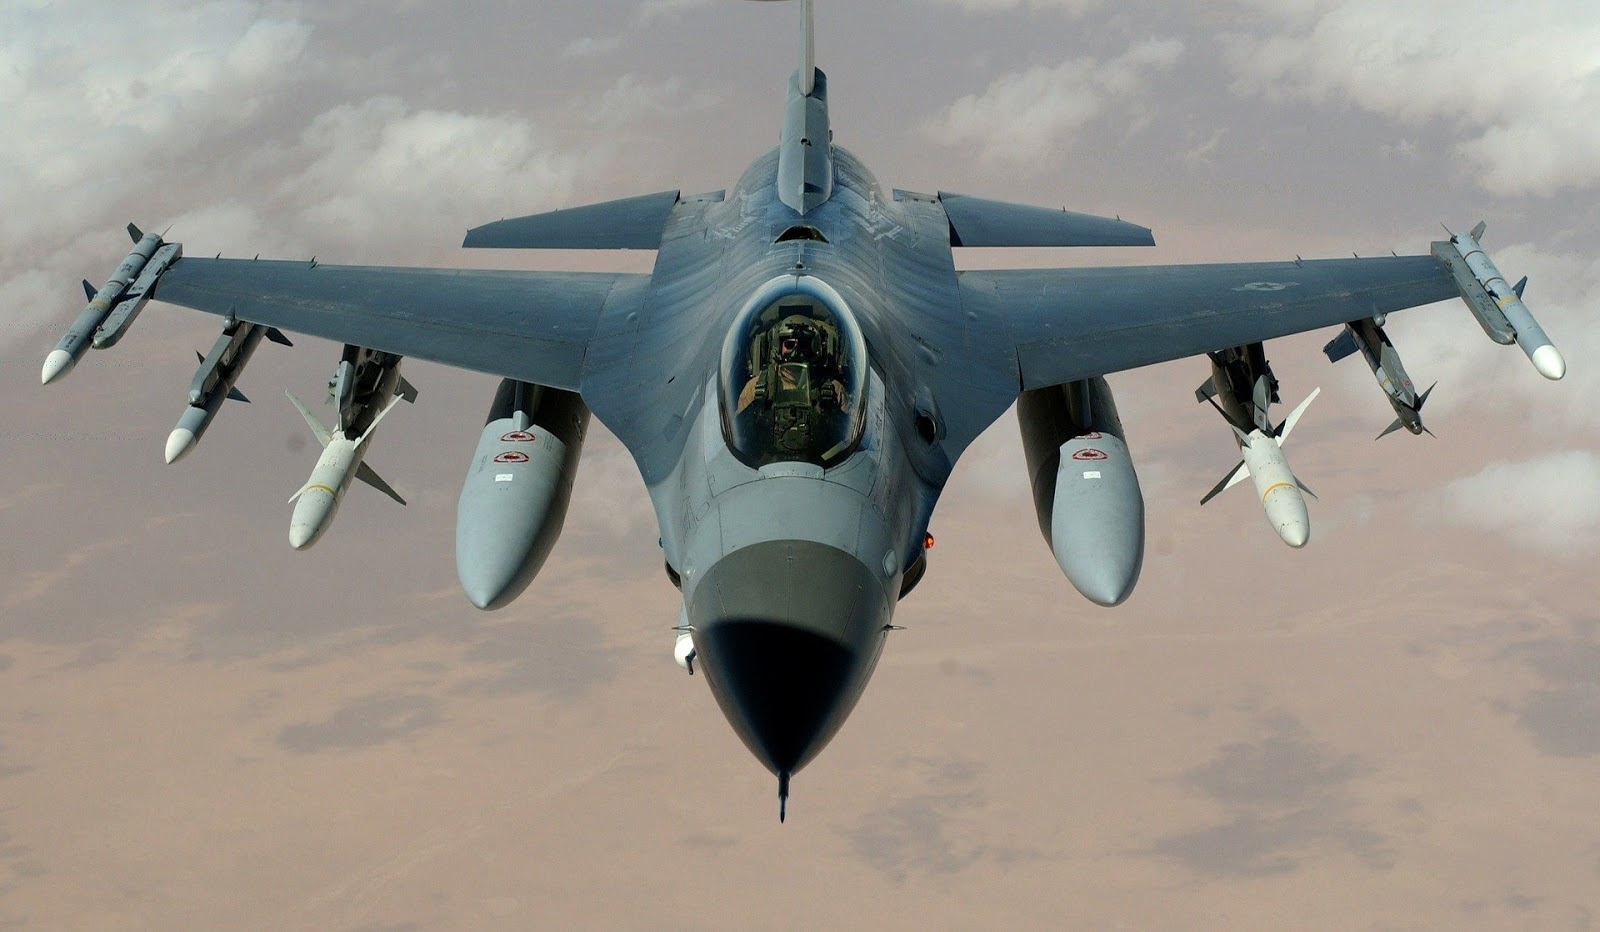 close up of a military fighter jet flying over the desert for blog post about U.S. Air force war movies